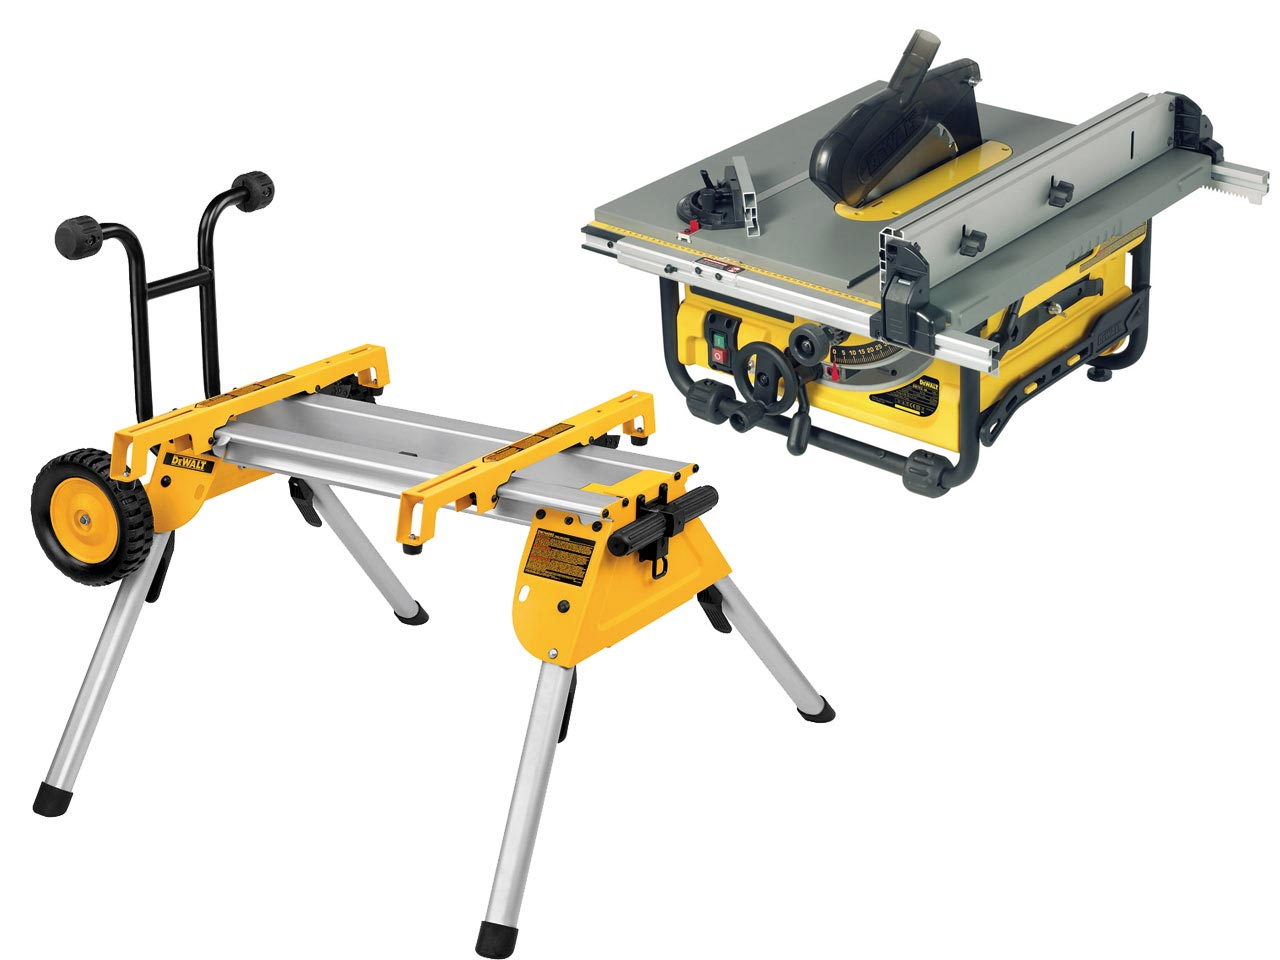 Dewalt dw745rsl 110v portable site saw with de7400 stand for 110v table saws